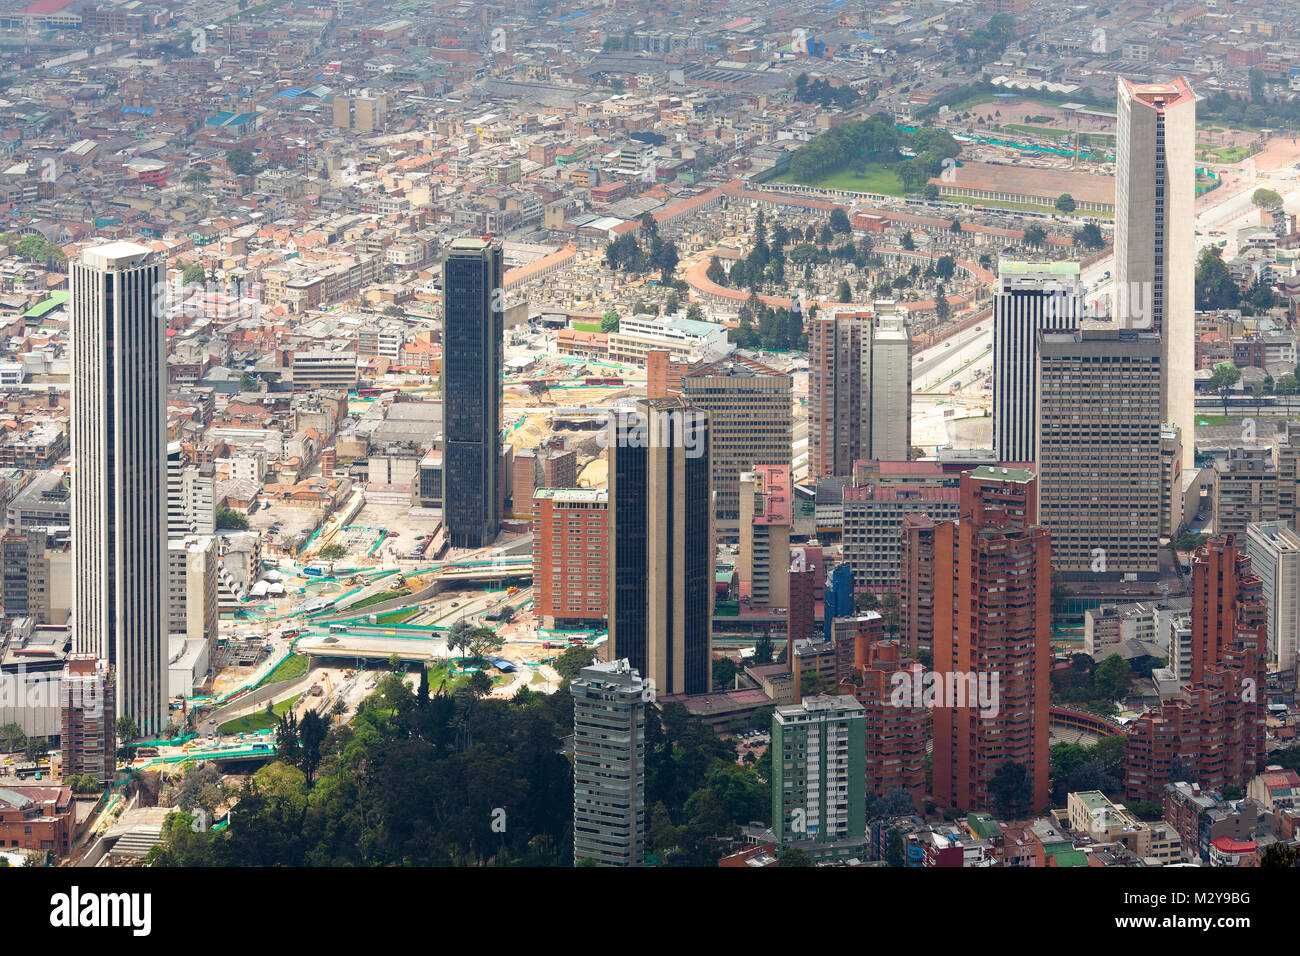 International Center of Bogota, Colombia, South America - Stock Image